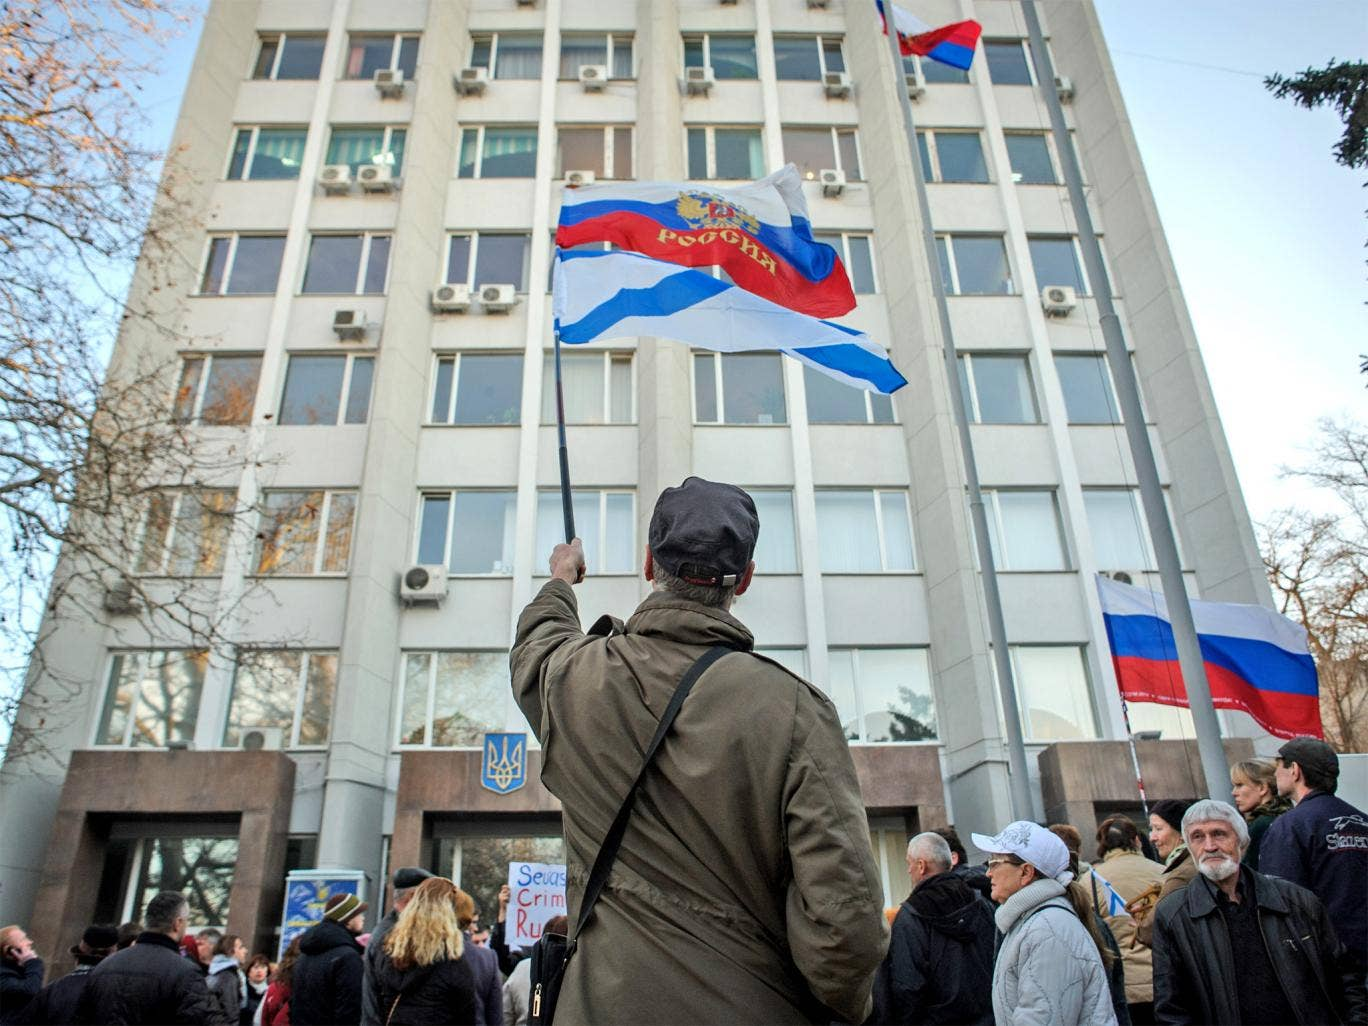 Flags are waved during a Pro-Russian rally in Sevastopol